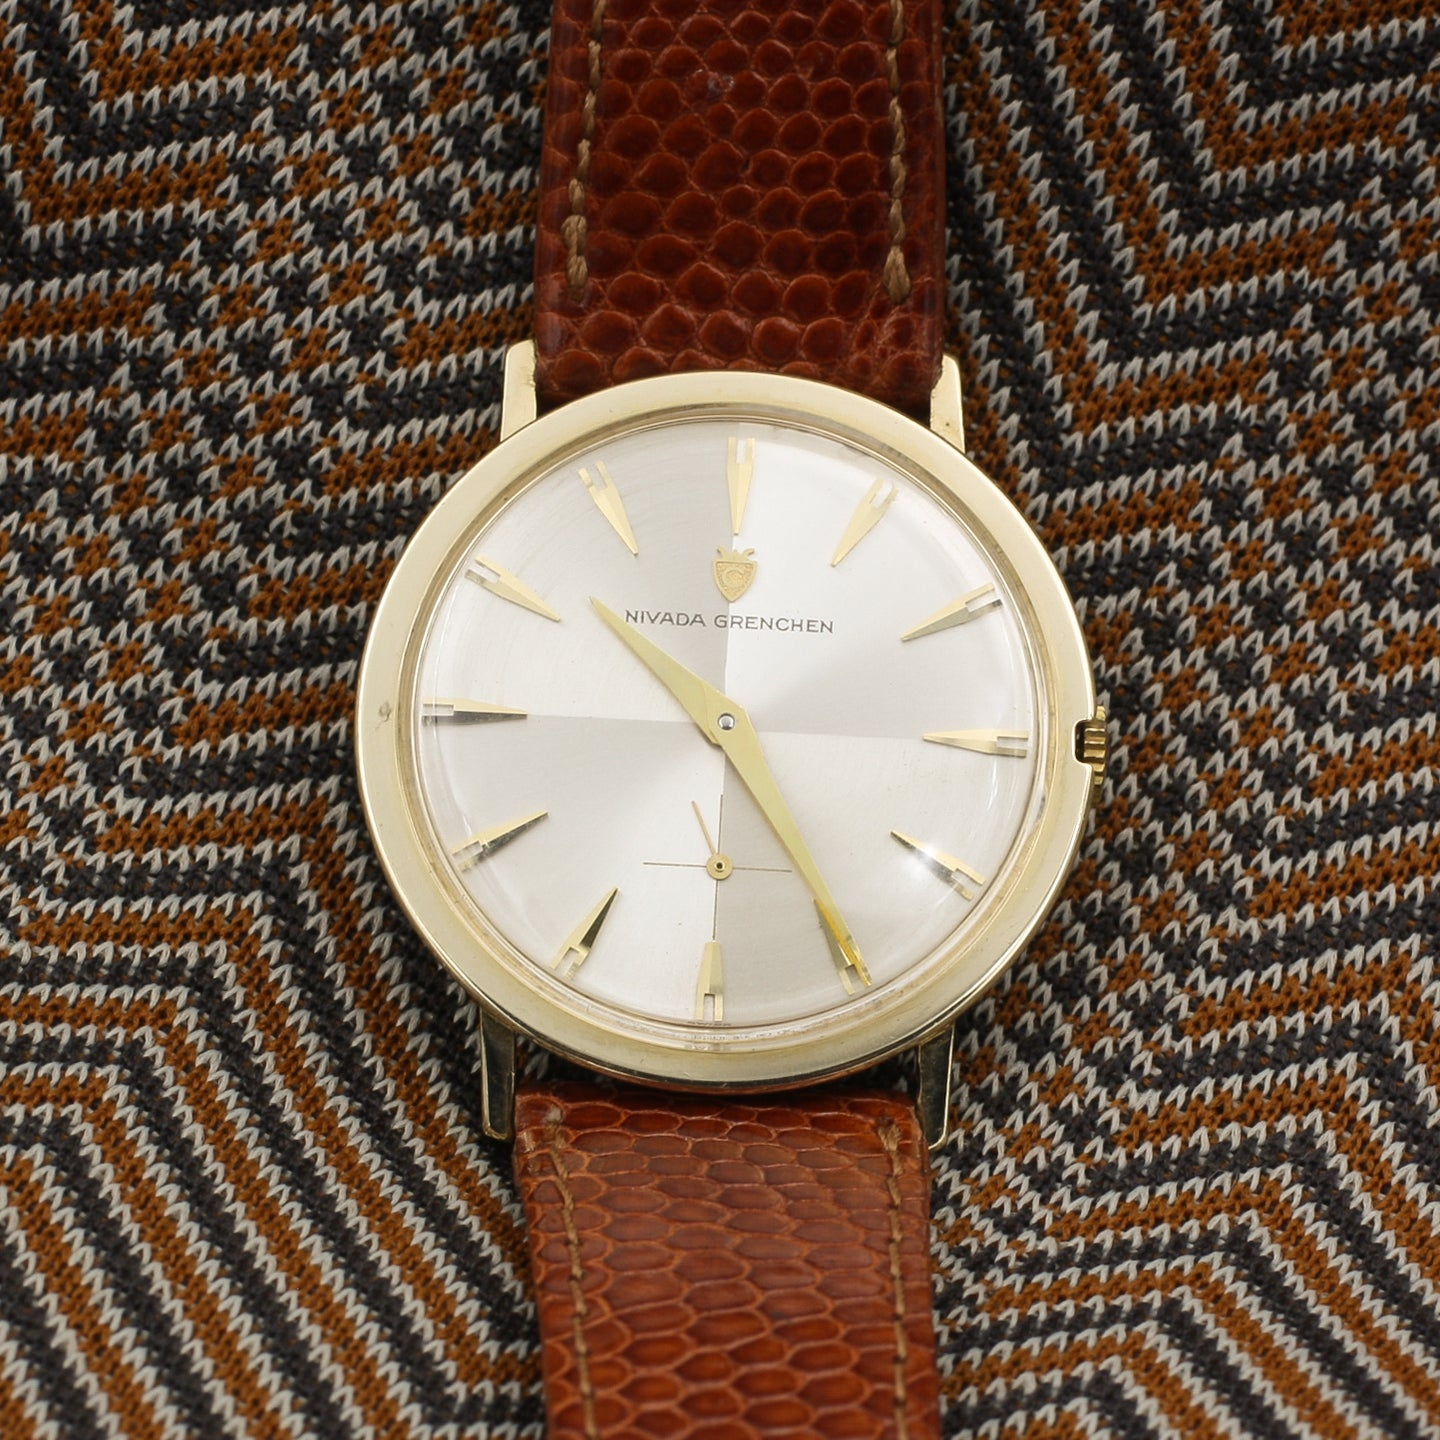 Nivada Grenchen Gold Wristwatch c1960